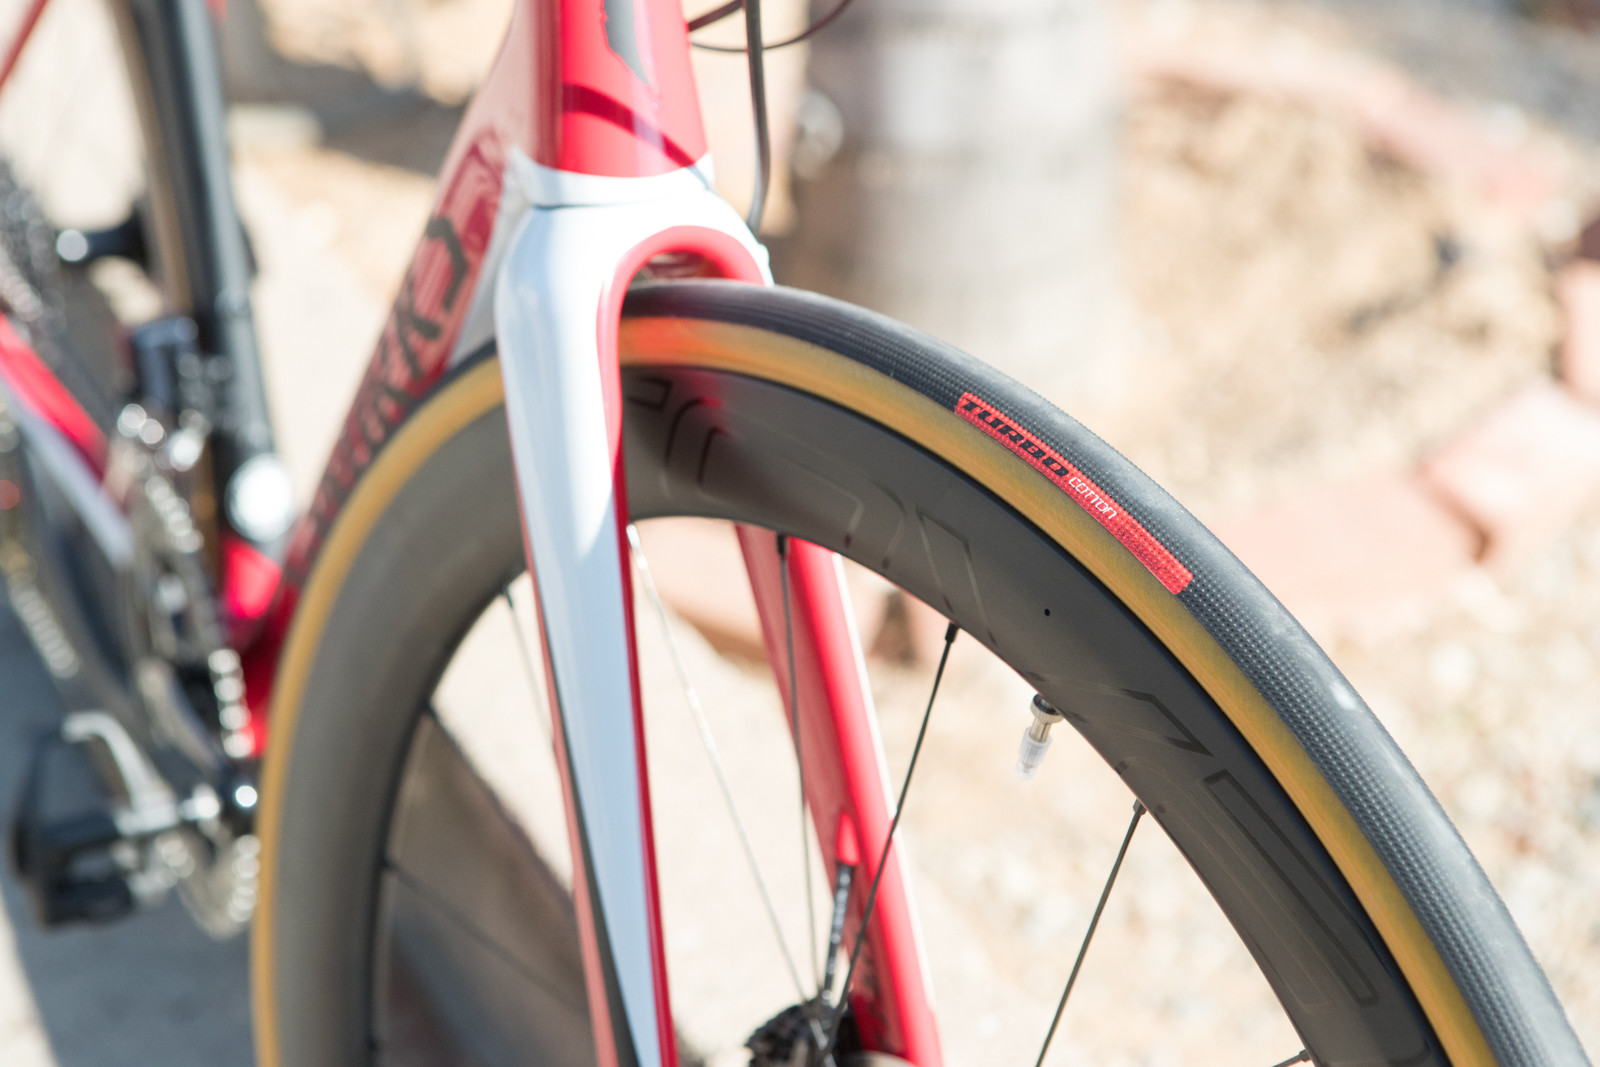 As mentioned in the short history lesson above, one of Specialized's original products was tires. Which they still produce today and are considered some of the best in the industry.